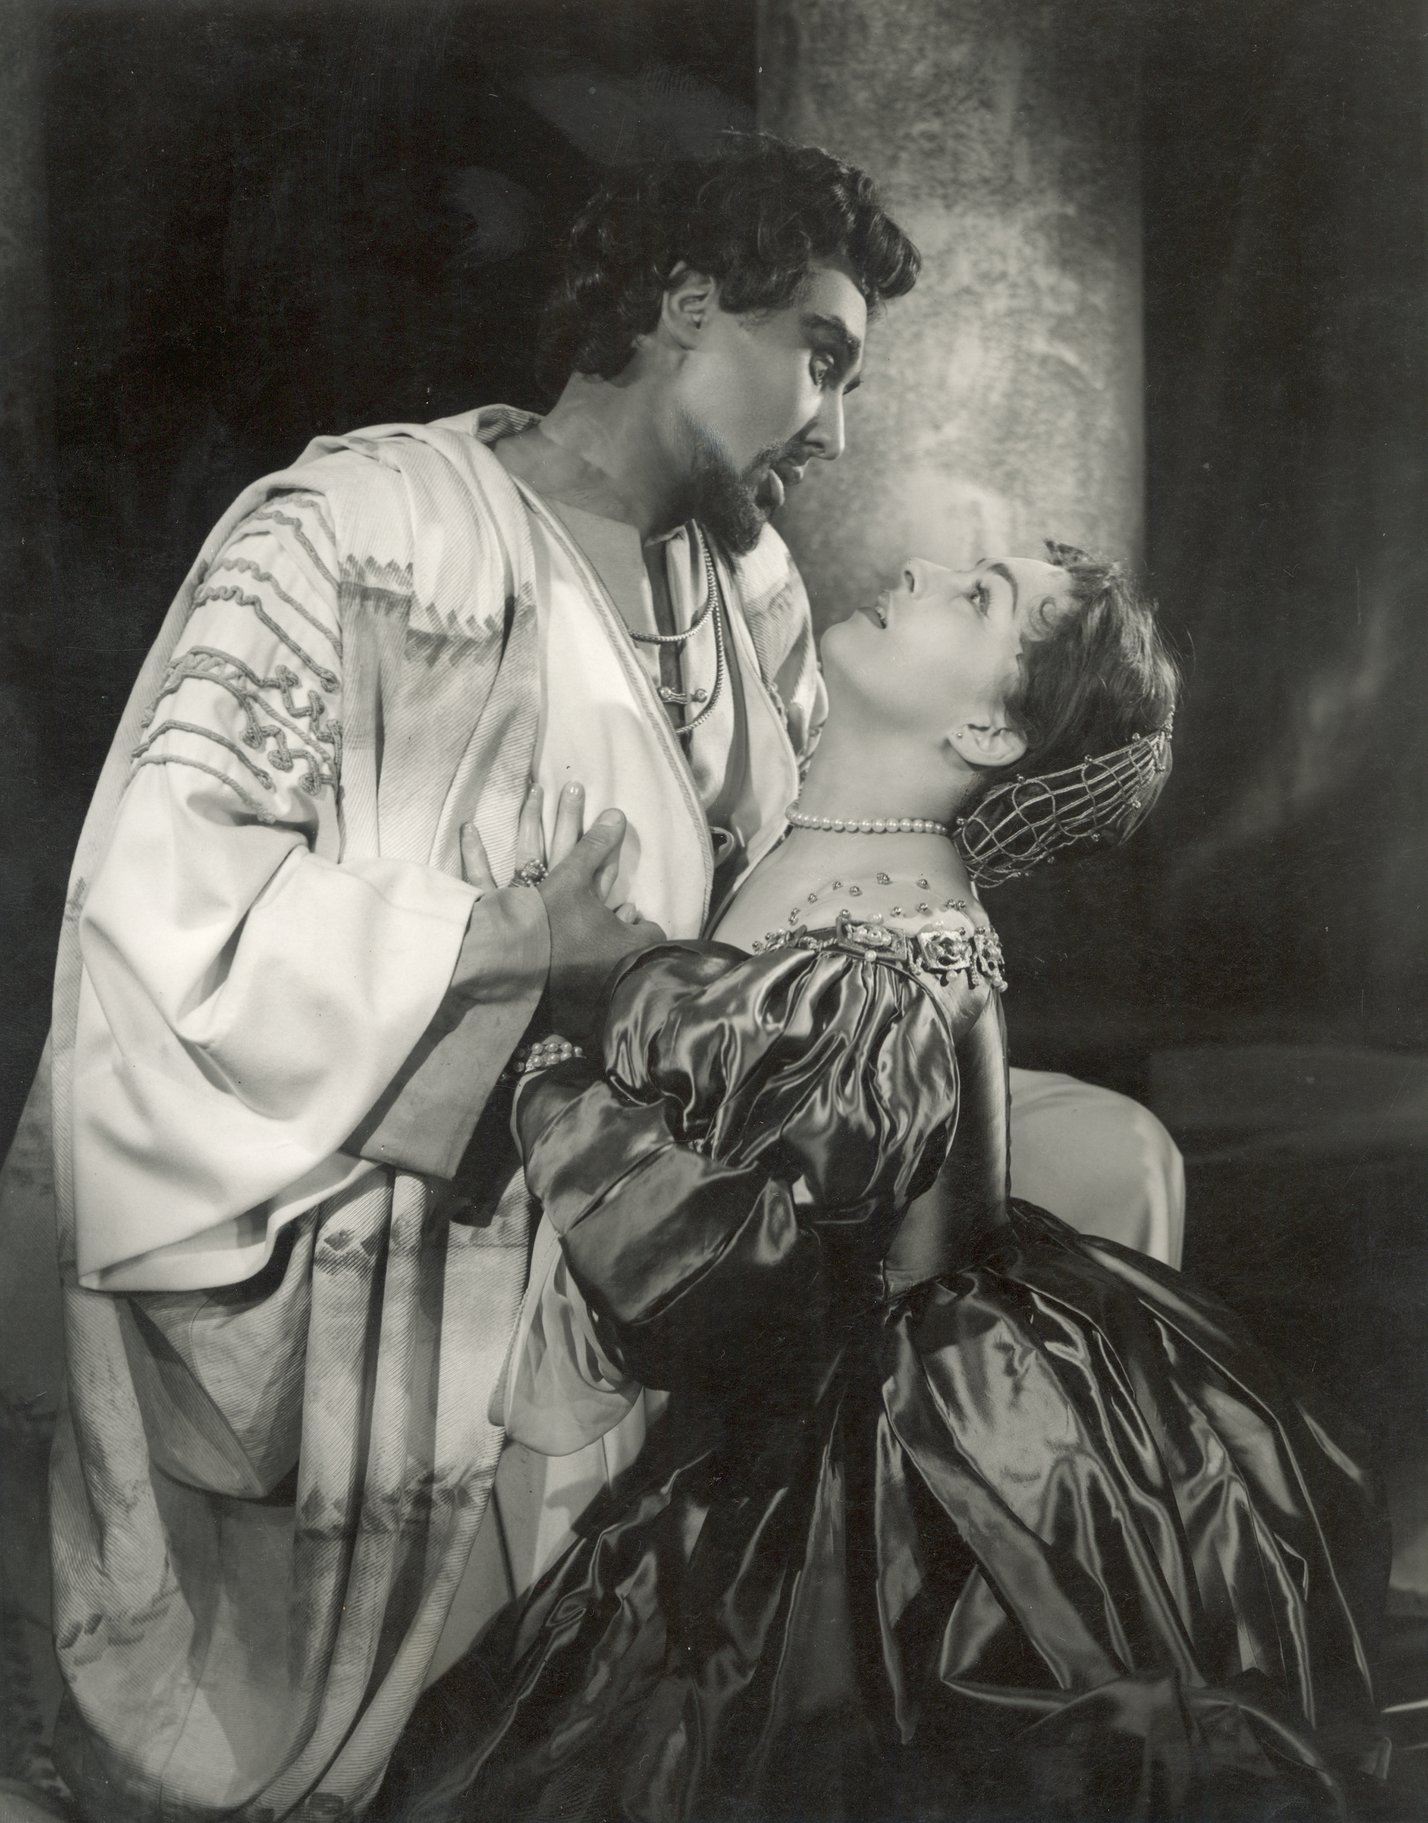 Othello and Desdemona in 1953.